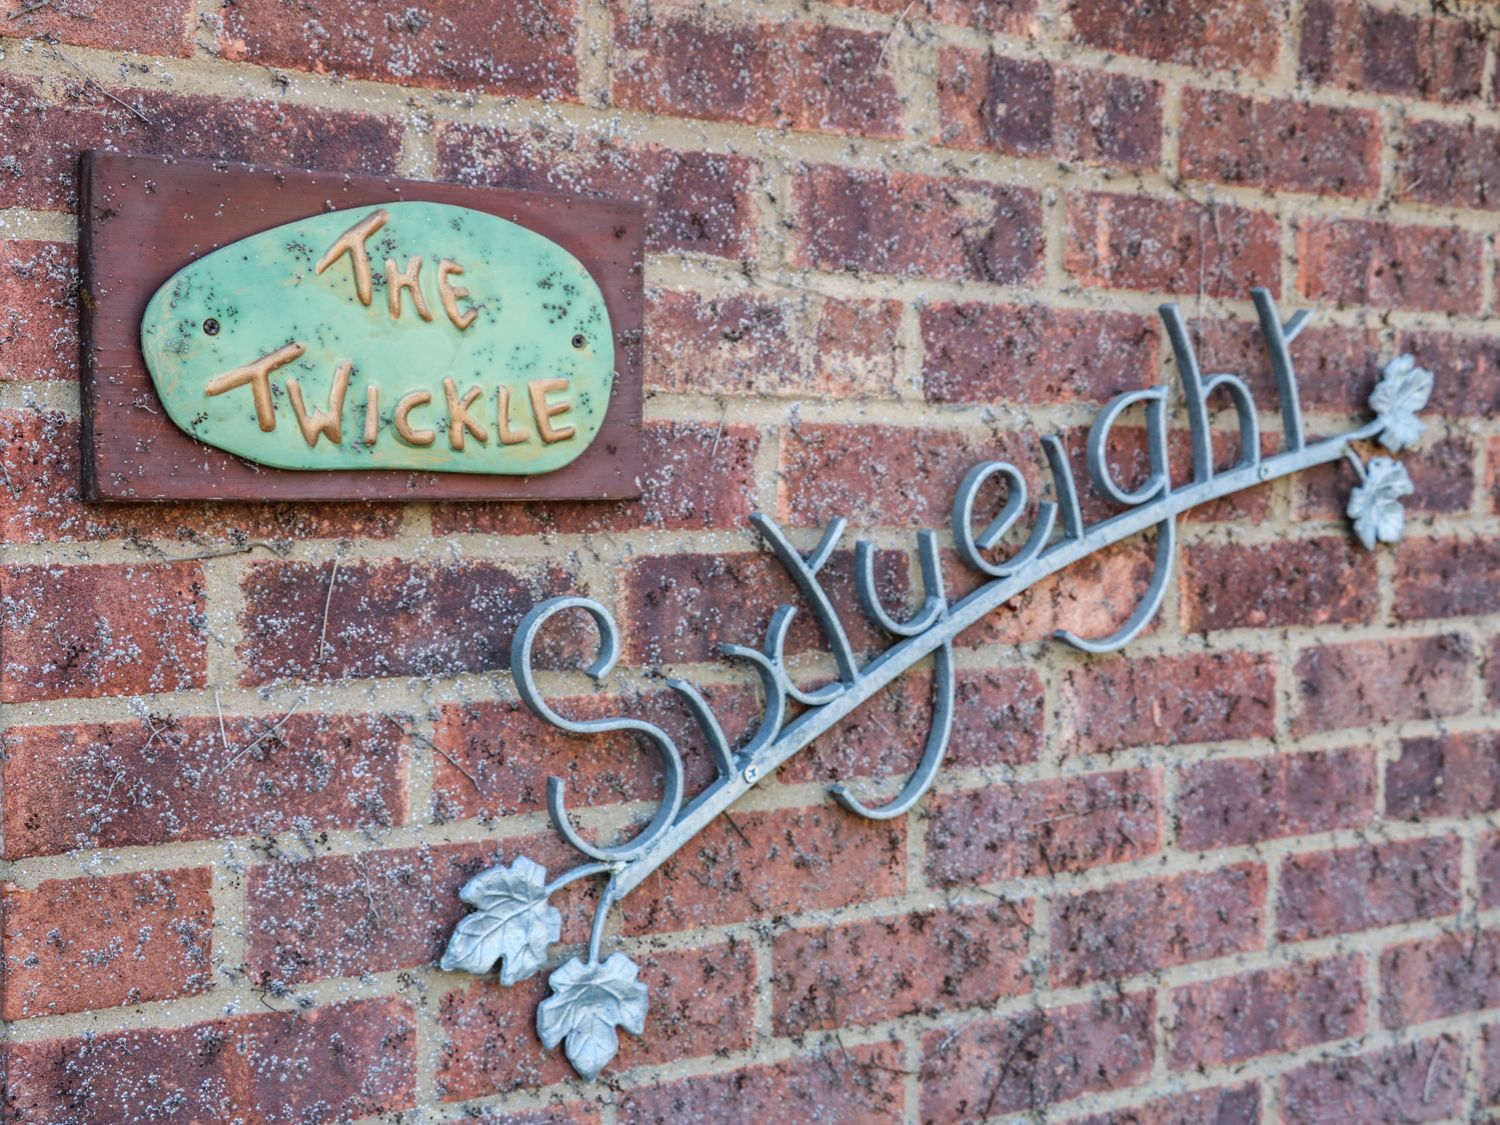 The Twickle in North Walsham - sleeps 8 people